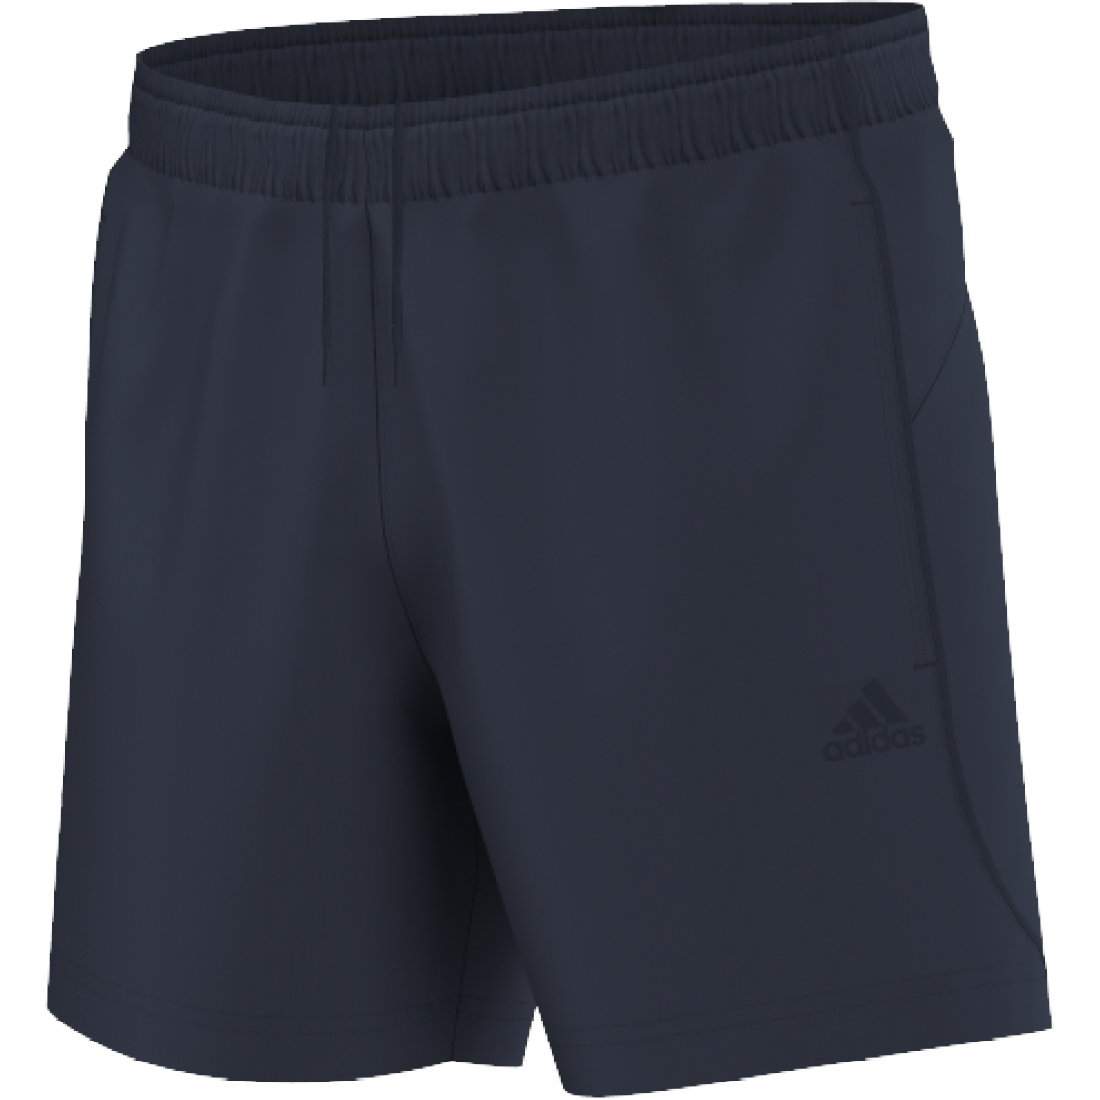 Image of   Adidas Sport Essentials Chelsea Shorts